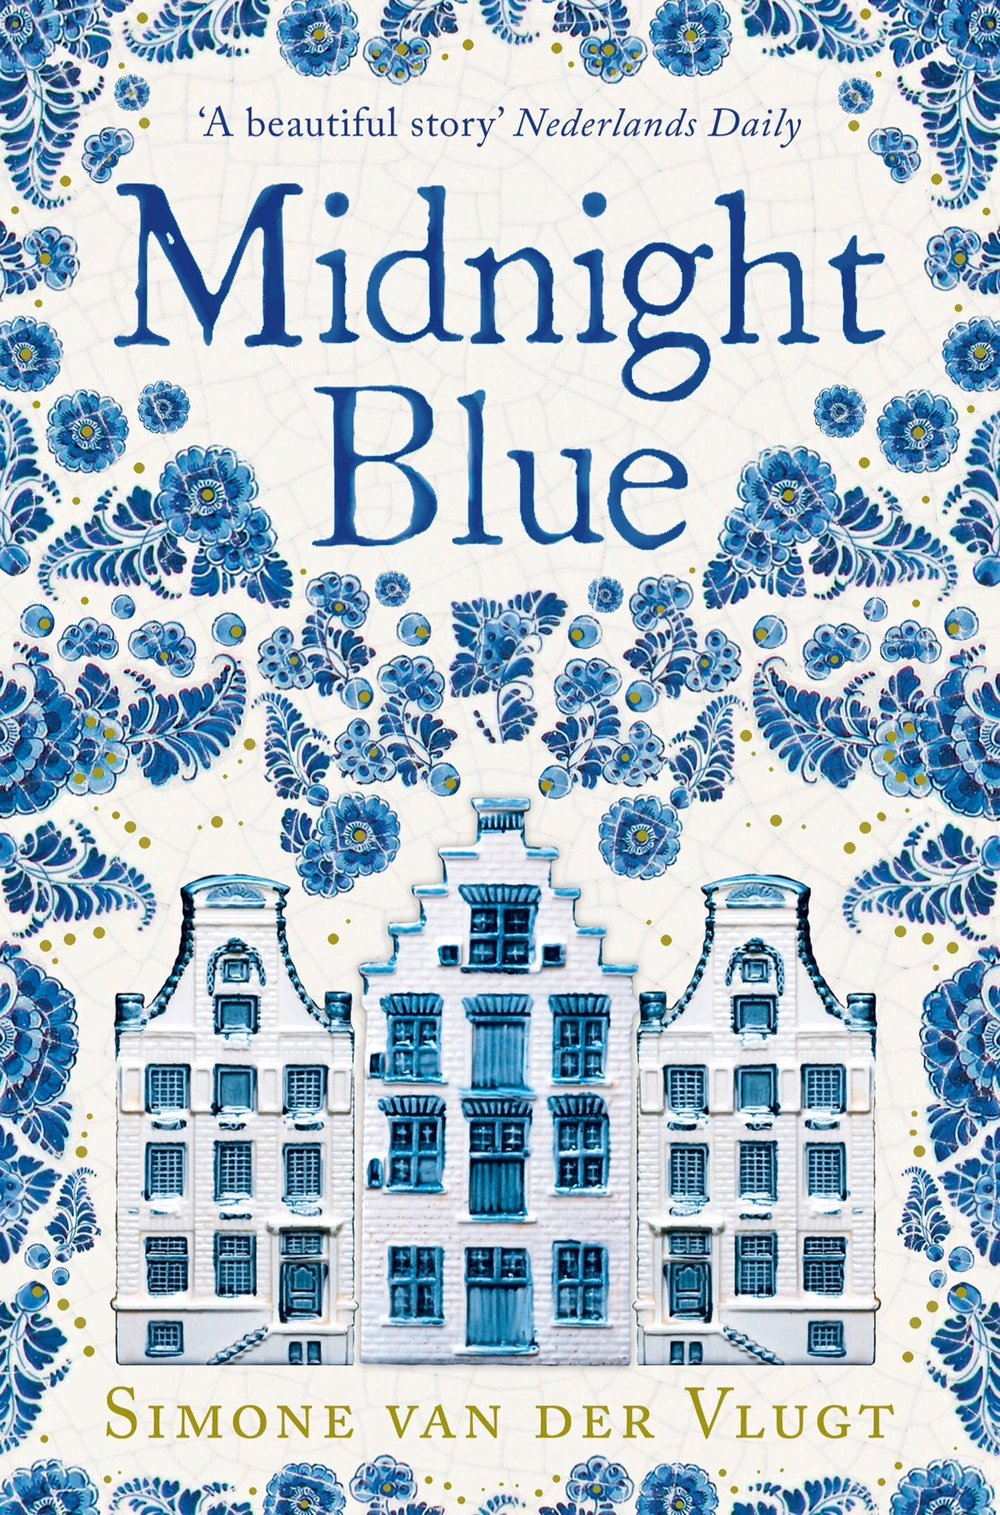 midnight blue by simone van der vlugt.jpg